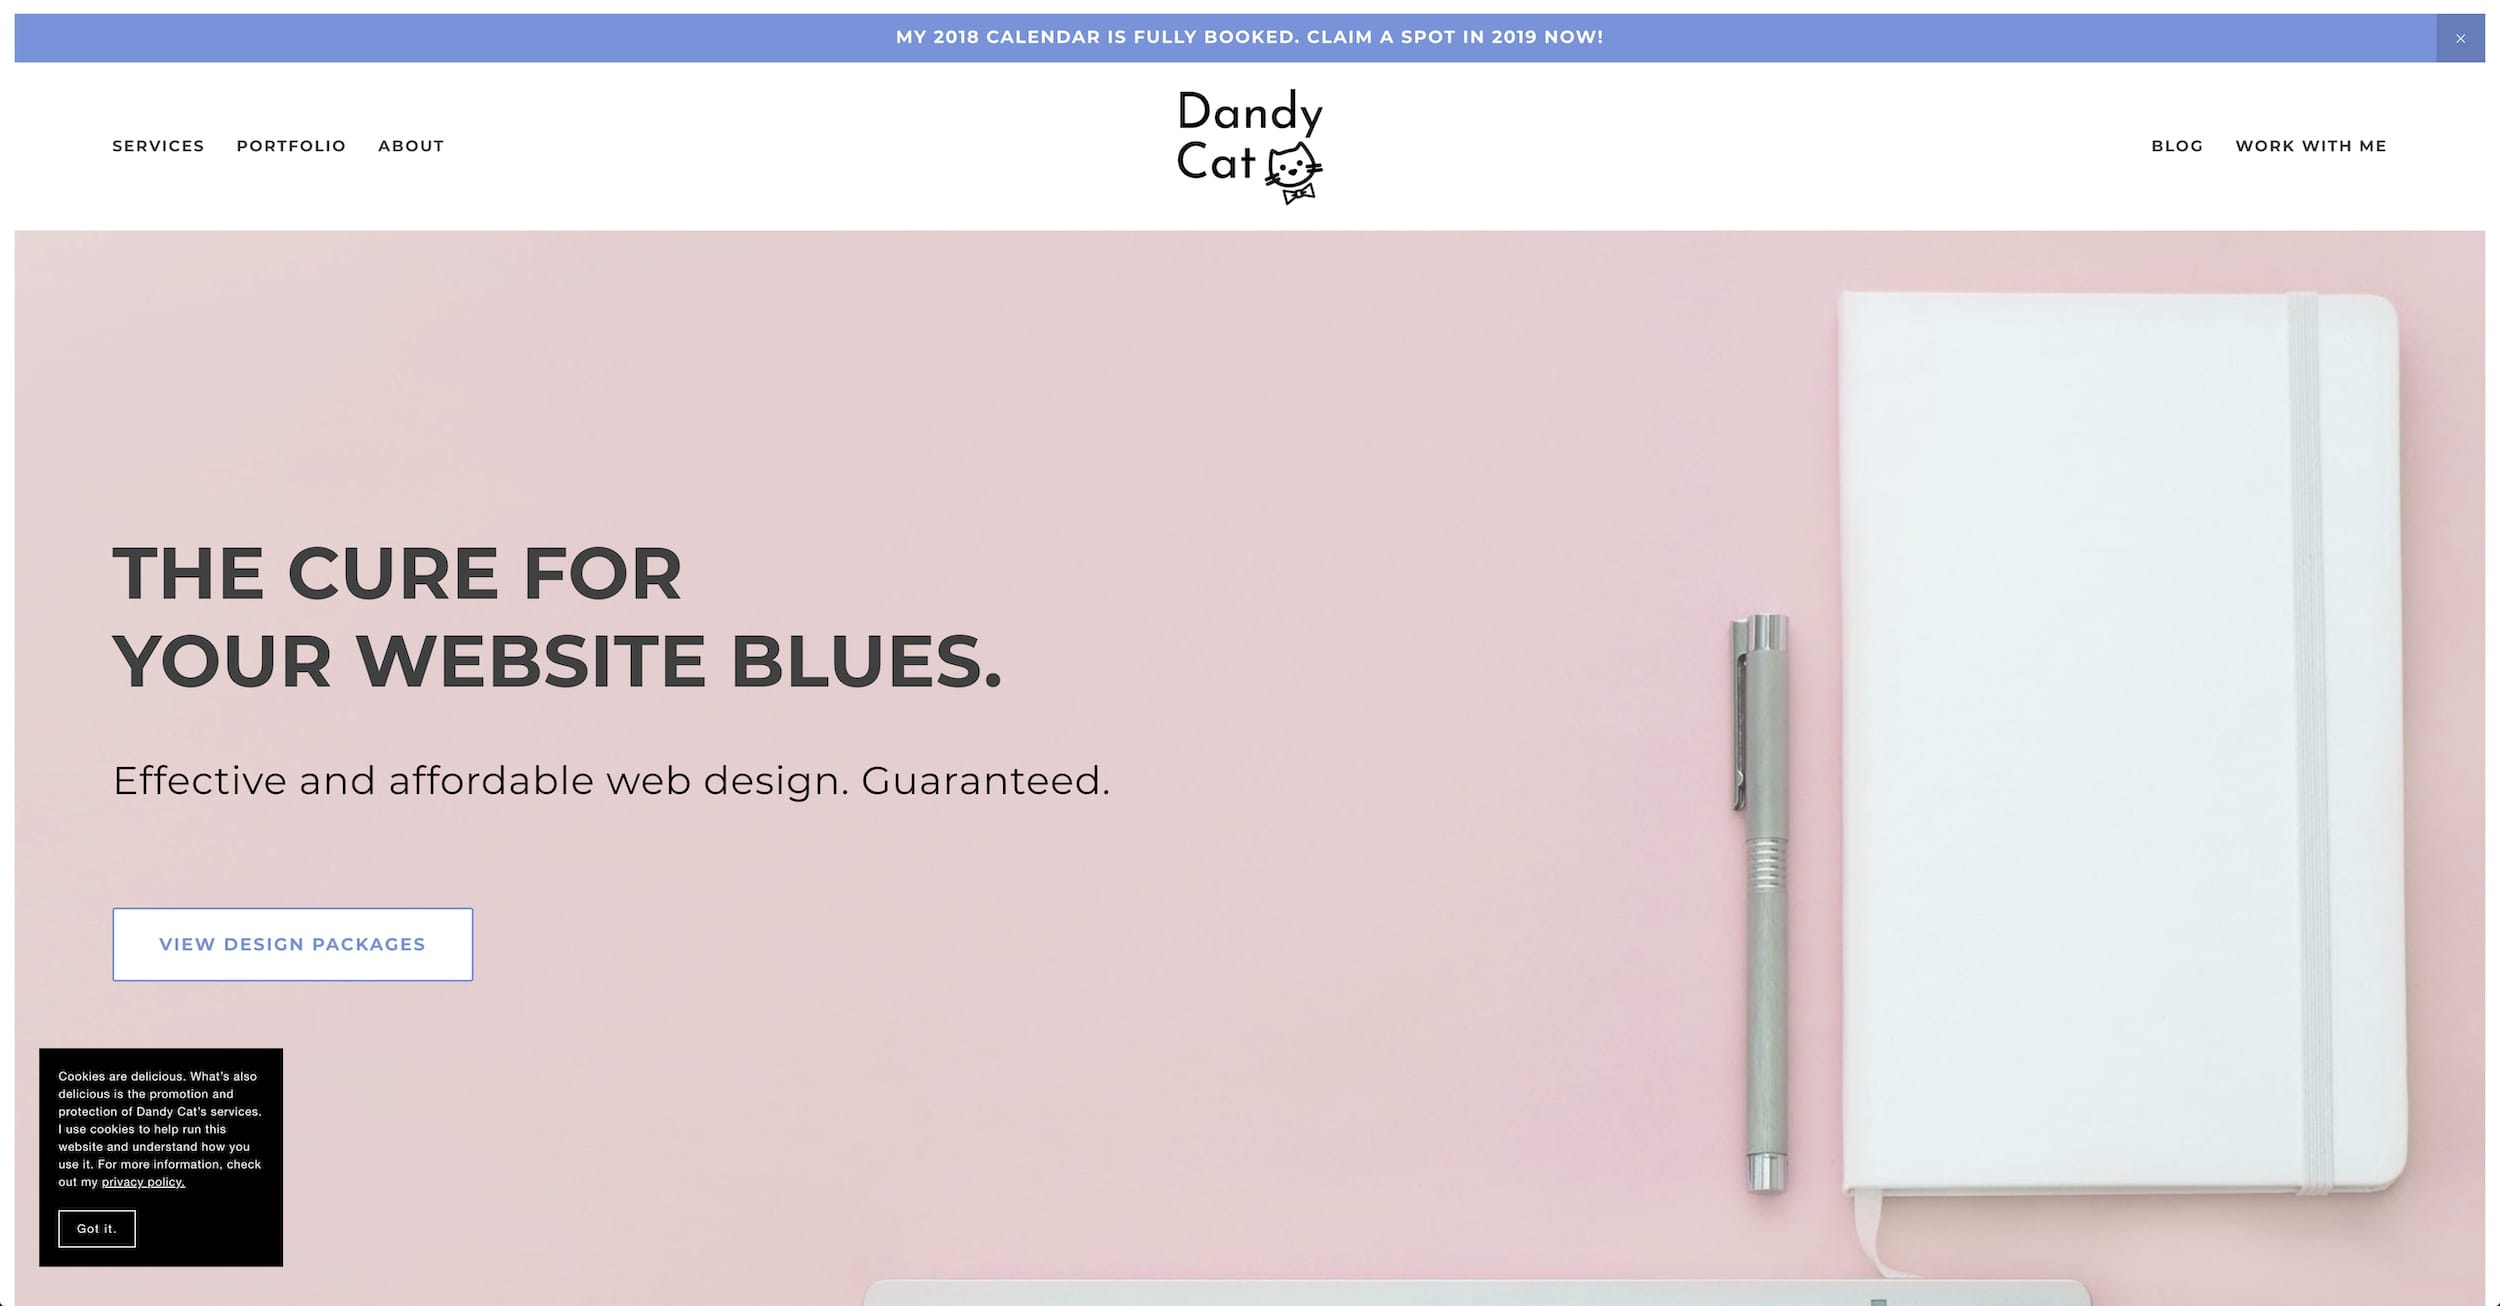 Then home page of the Dandy Cat Design website, featuring a cookie banner with white text on a black background.